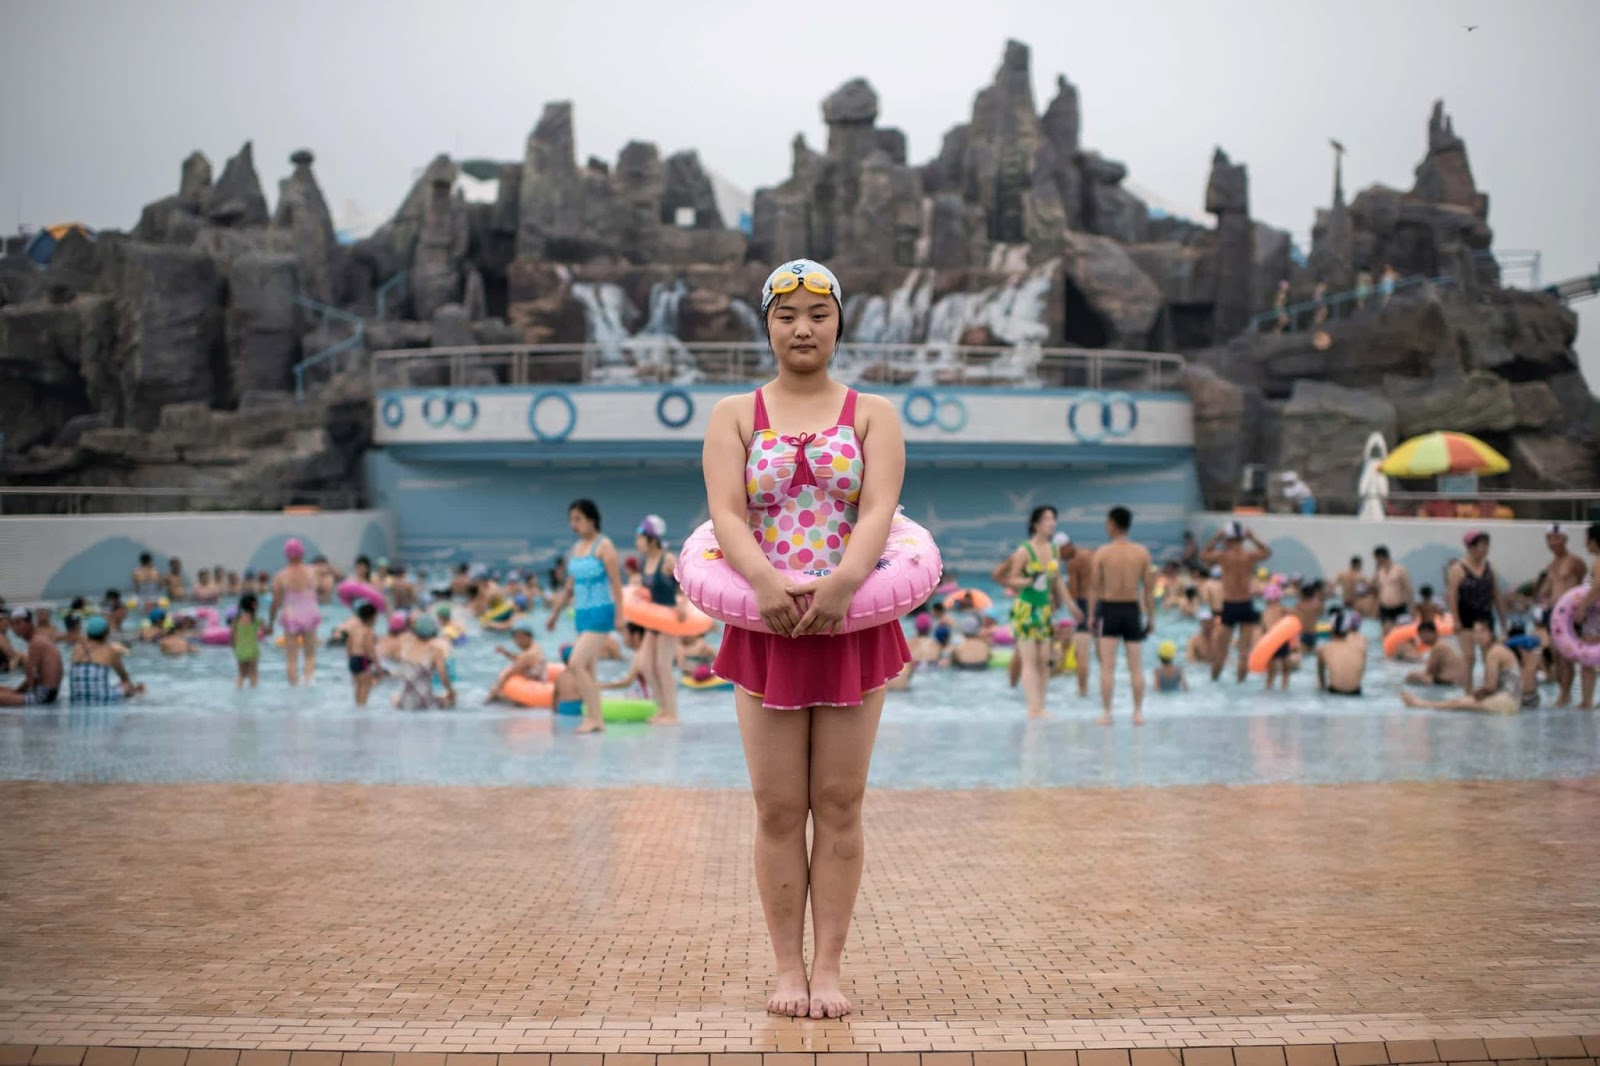 25 Of The Most Intriguing Pictures Of 2017 - Swimmer at the Munsu water park in Pyongyang